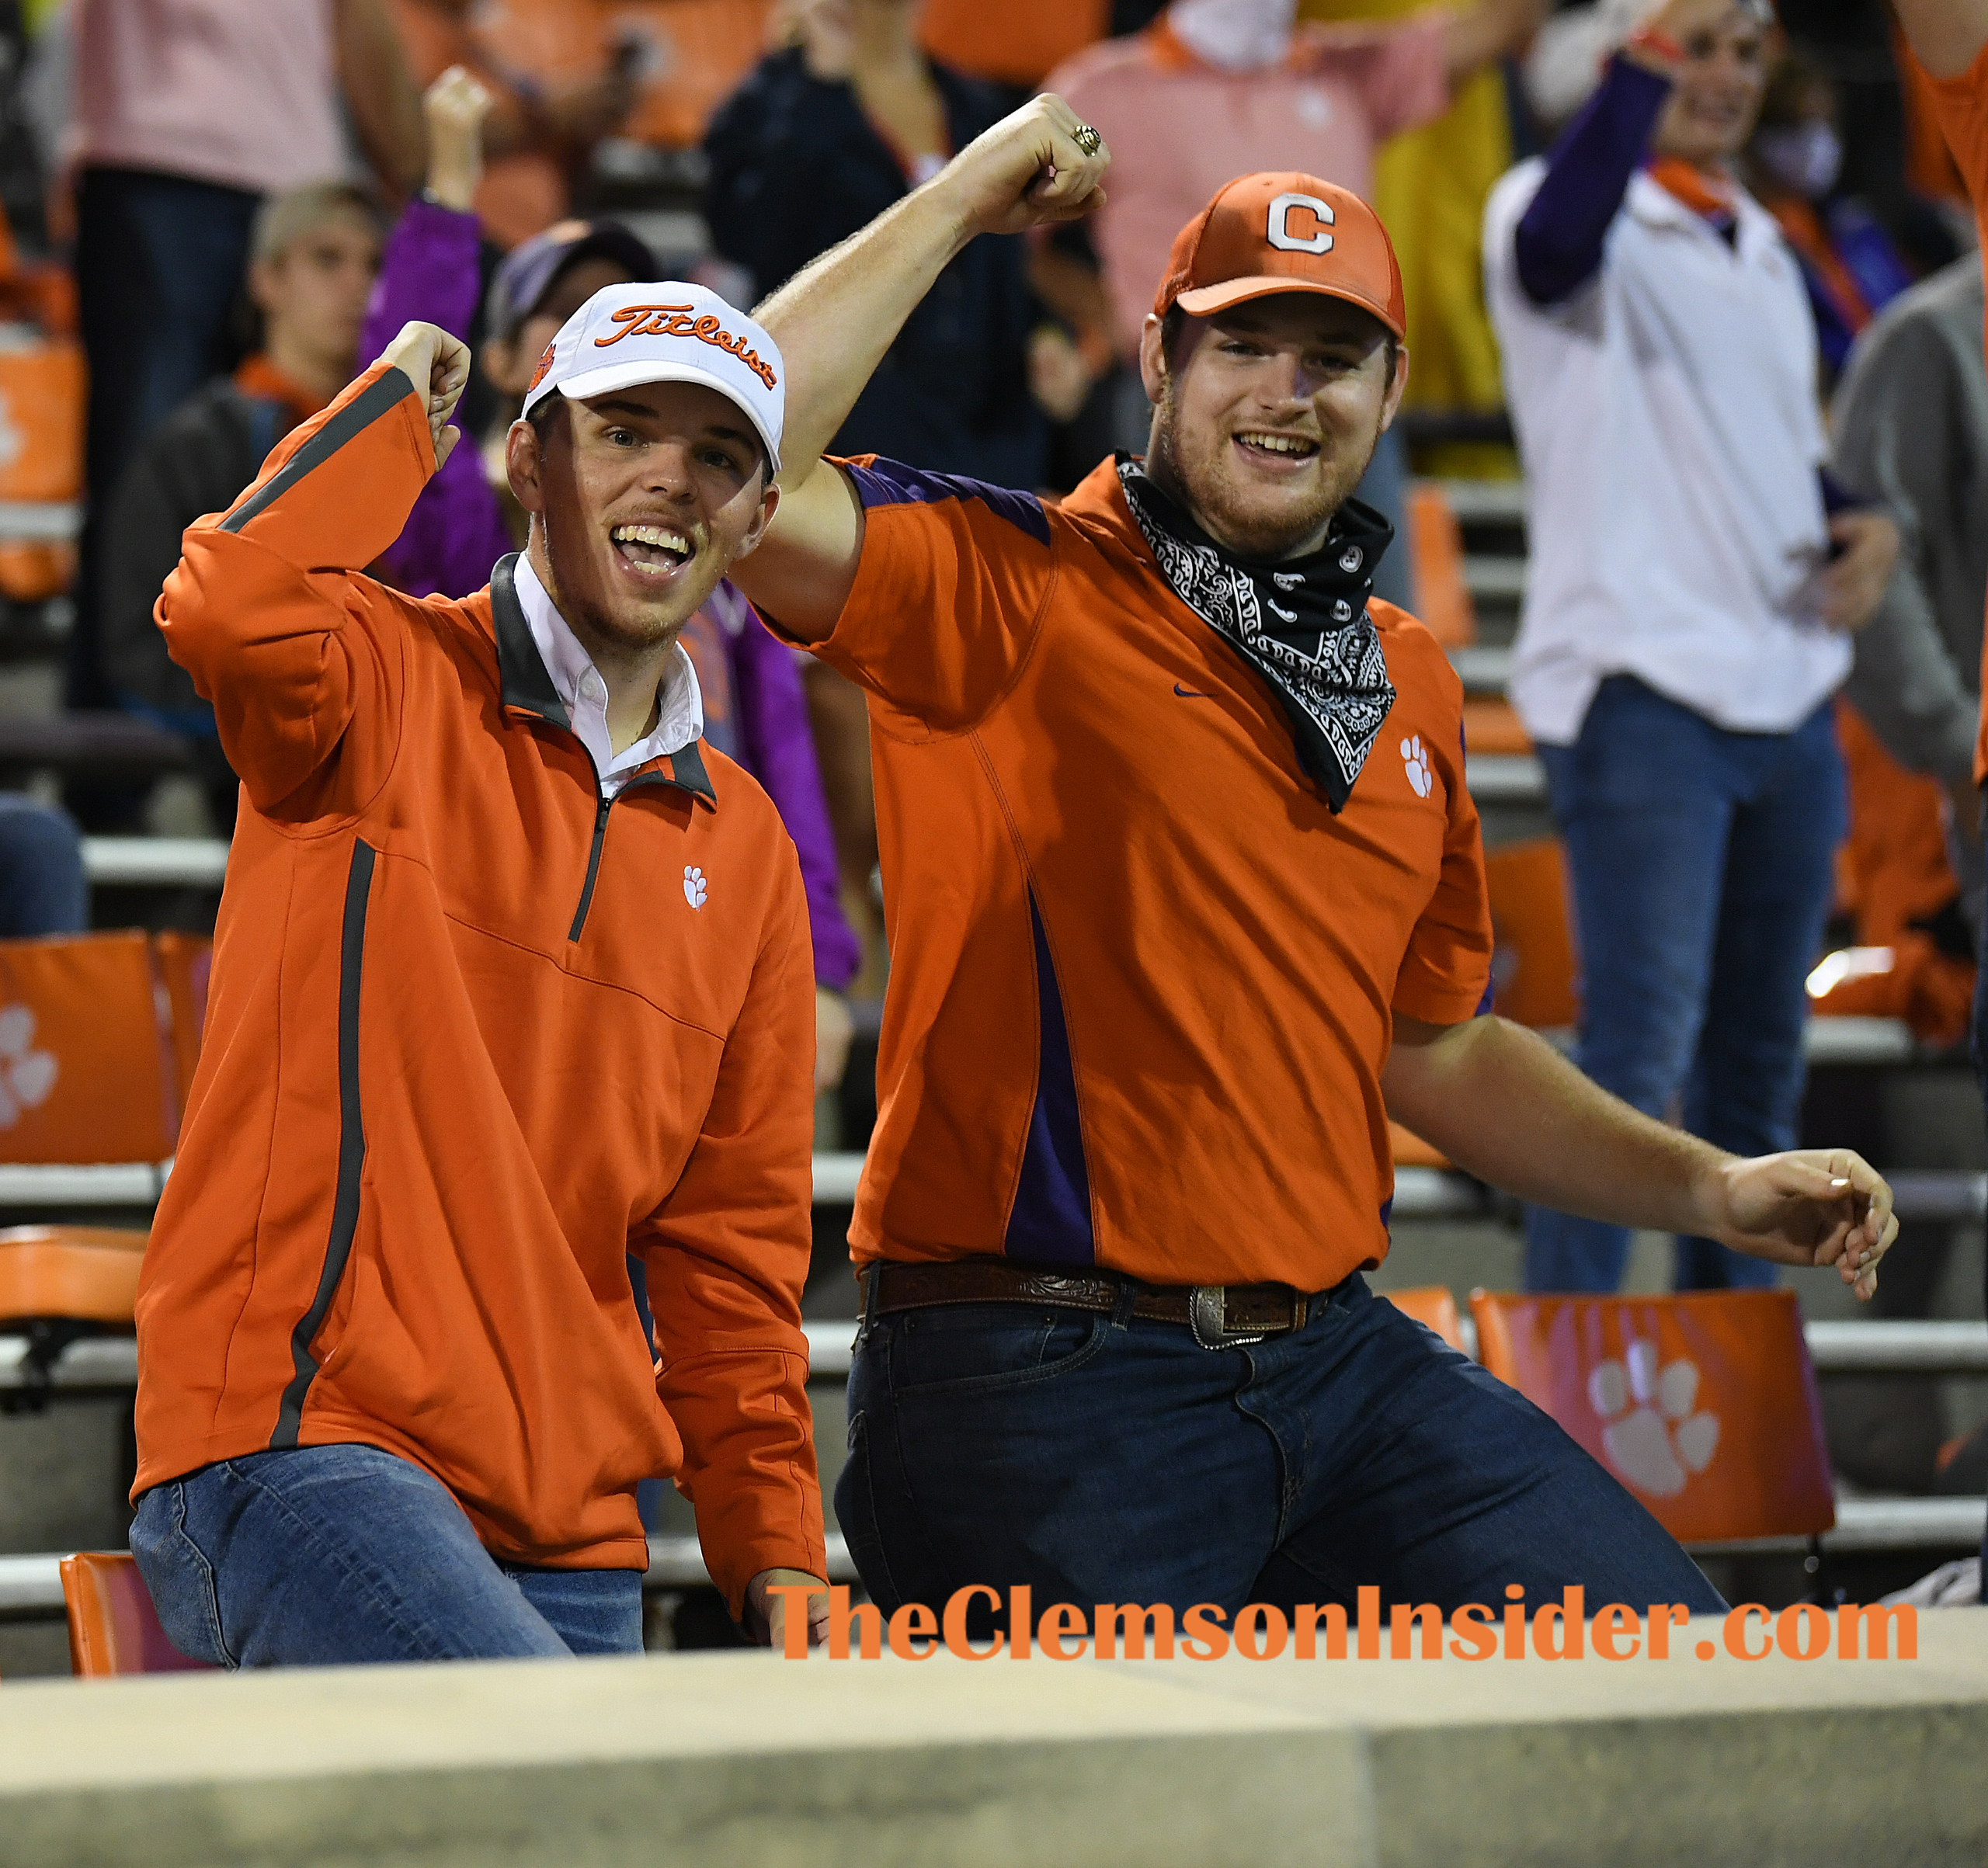 Clemson fans during the 2nd quarter of Clemson's game against the University of Miami at Clemson's Memorial Stadium Saturday, October 10, 2020. Bart Boatwright/The Clemson Insider